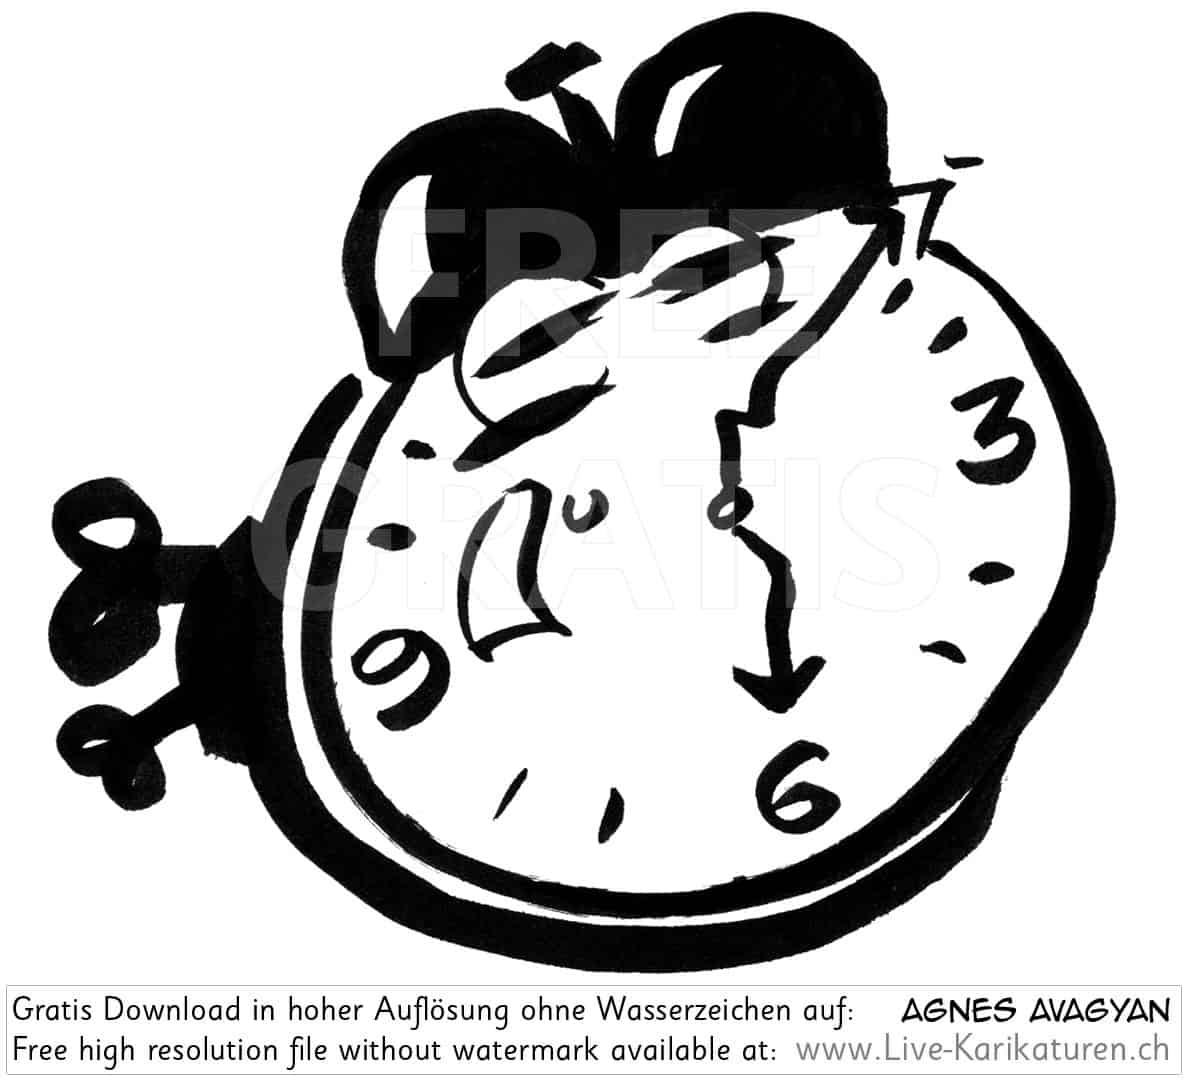 Uhr Wecker Alarm watch clock time 6 Uhr schwarz altmodisch Augen Aufzieh schwarzweiss black and white Cartoon Comic Karikatur Clipart Zeichnung Bild Illustration image painting kostenlos Gratisbild free image, Watermark HD FullHD